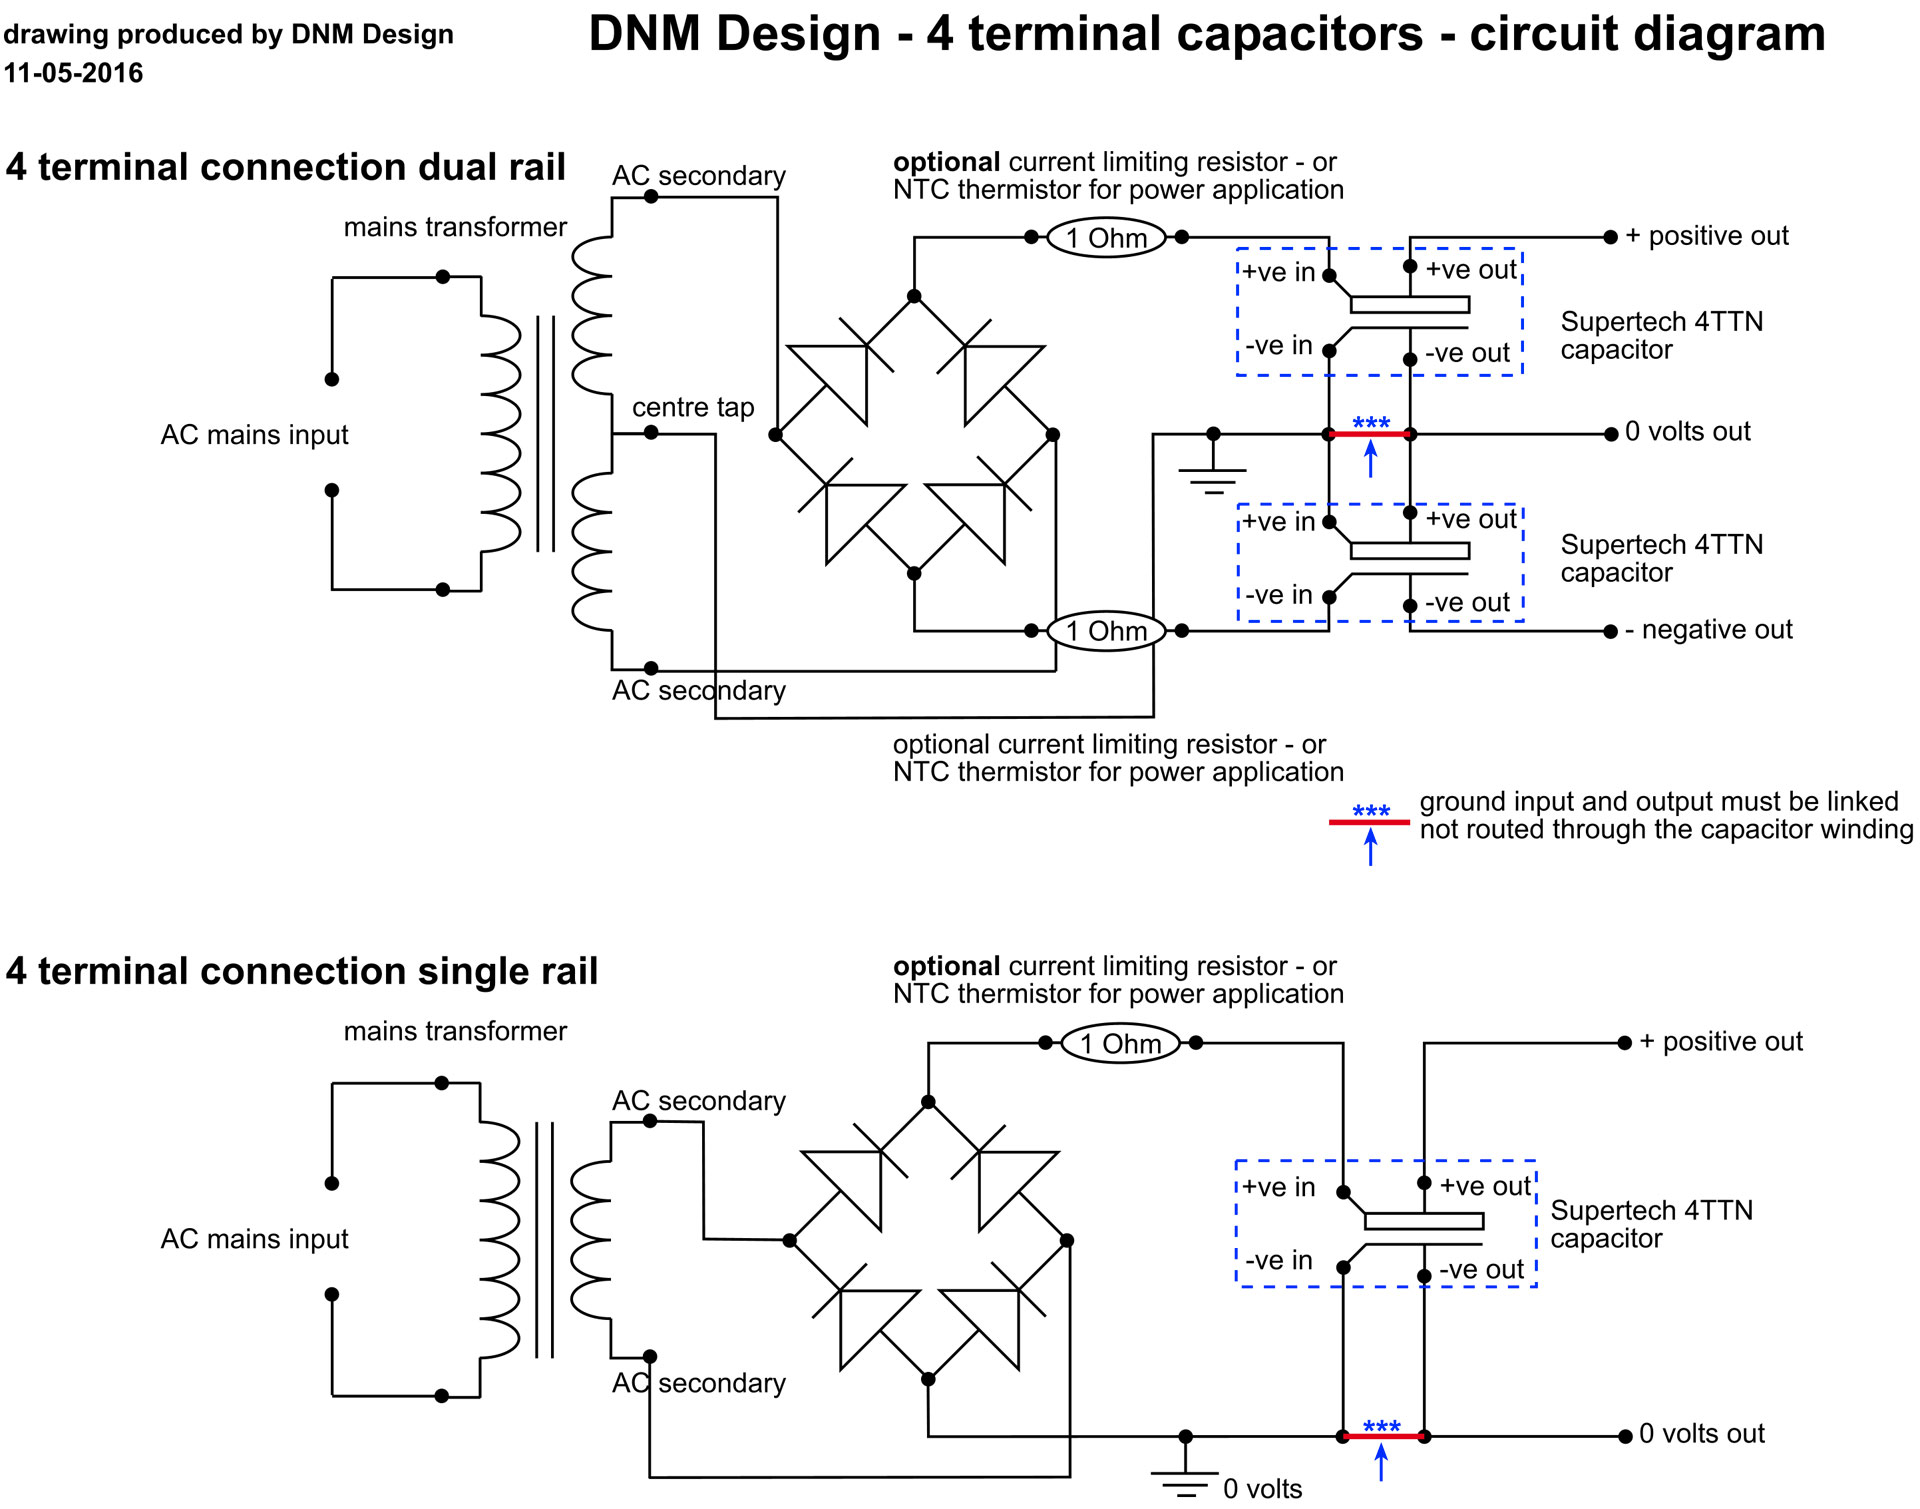 Dnm Products Capacitors Overview Wiring Diagram In Addition Ac Dual Capacitor Circuit For Use Of 4ttn Rail And Single Circuits Shown A New Window